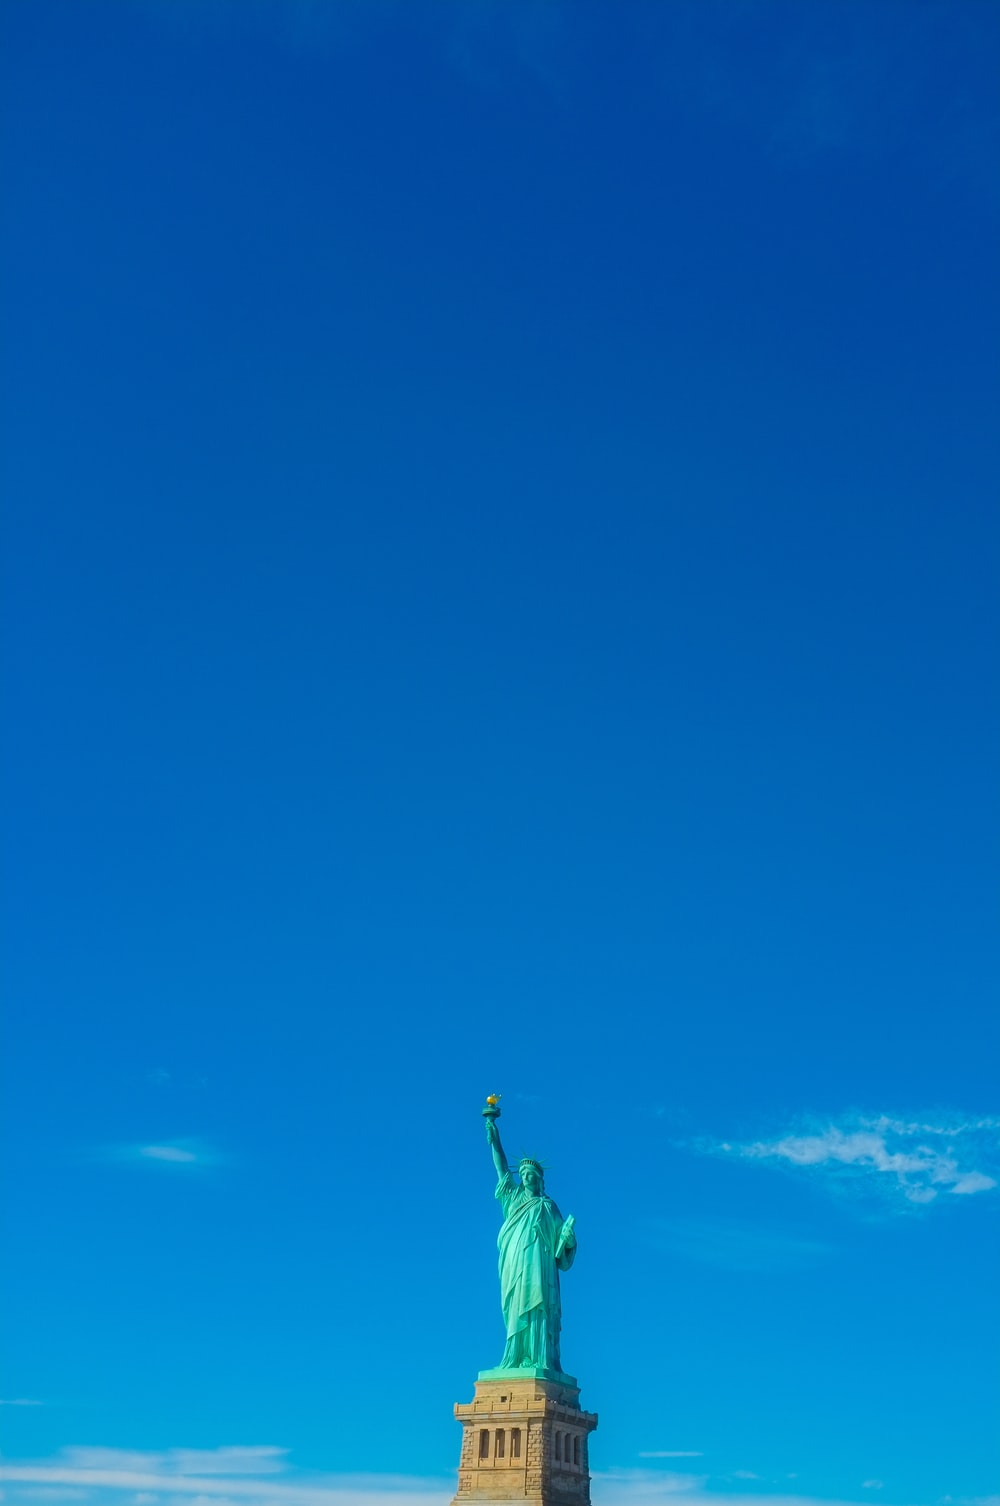 Statue of Liberty under clear blue sky